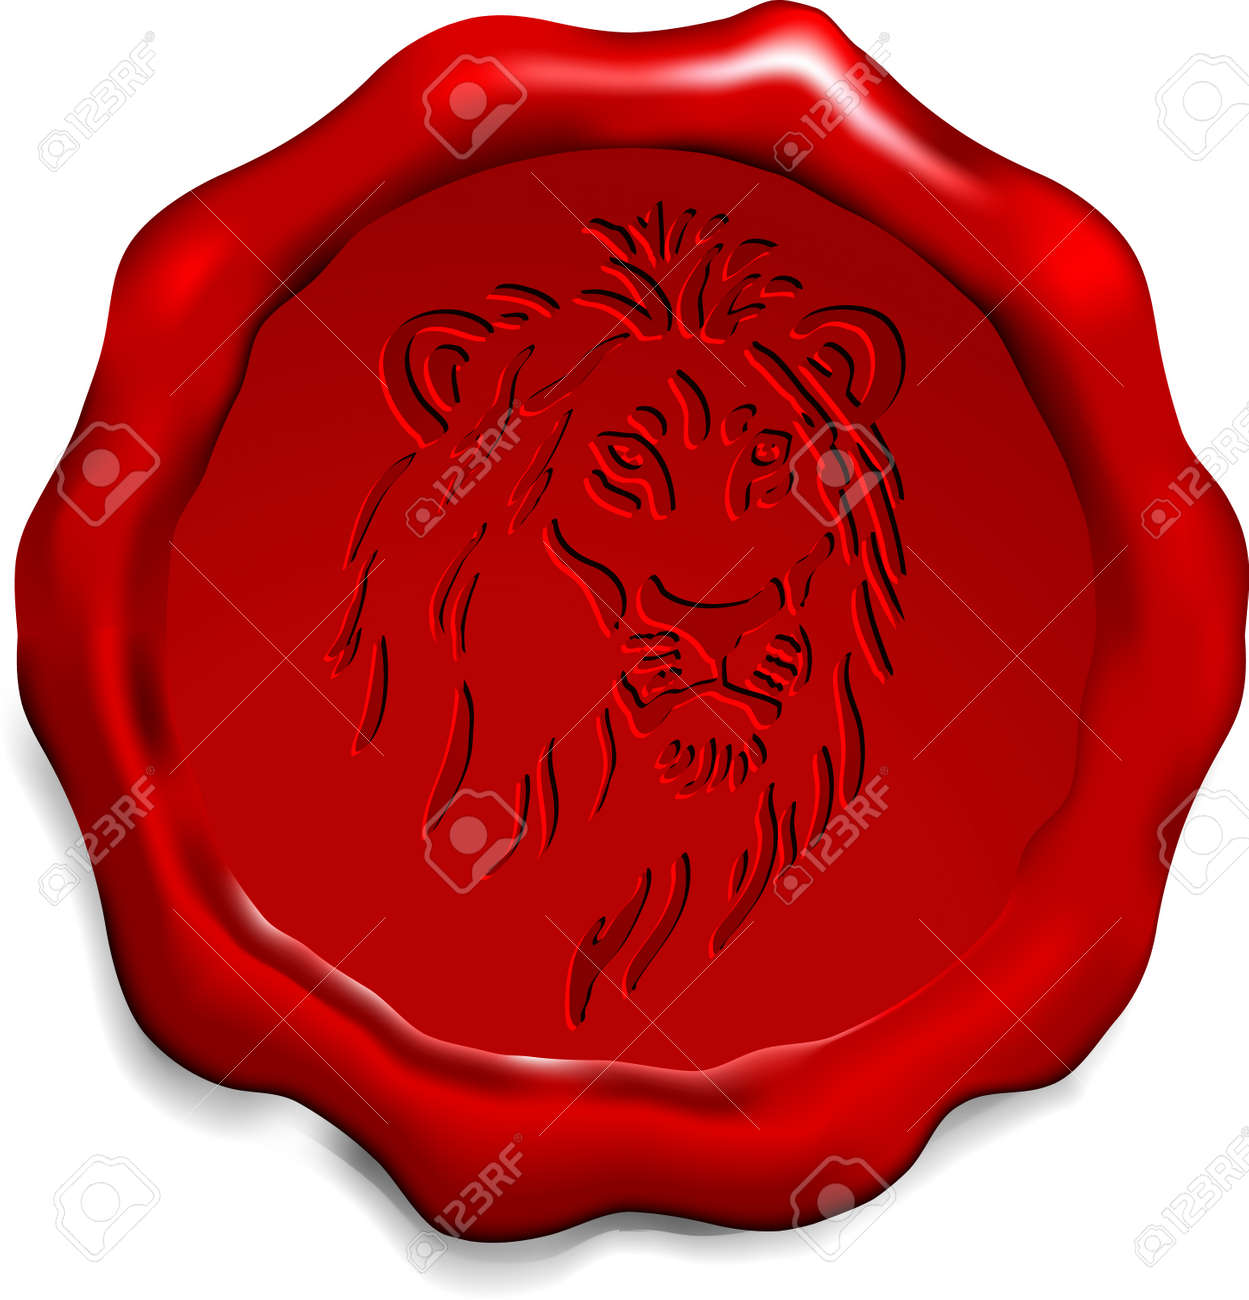 lion on wax seal origianl vector illustration wax seal letter stamp ideal for old style concept